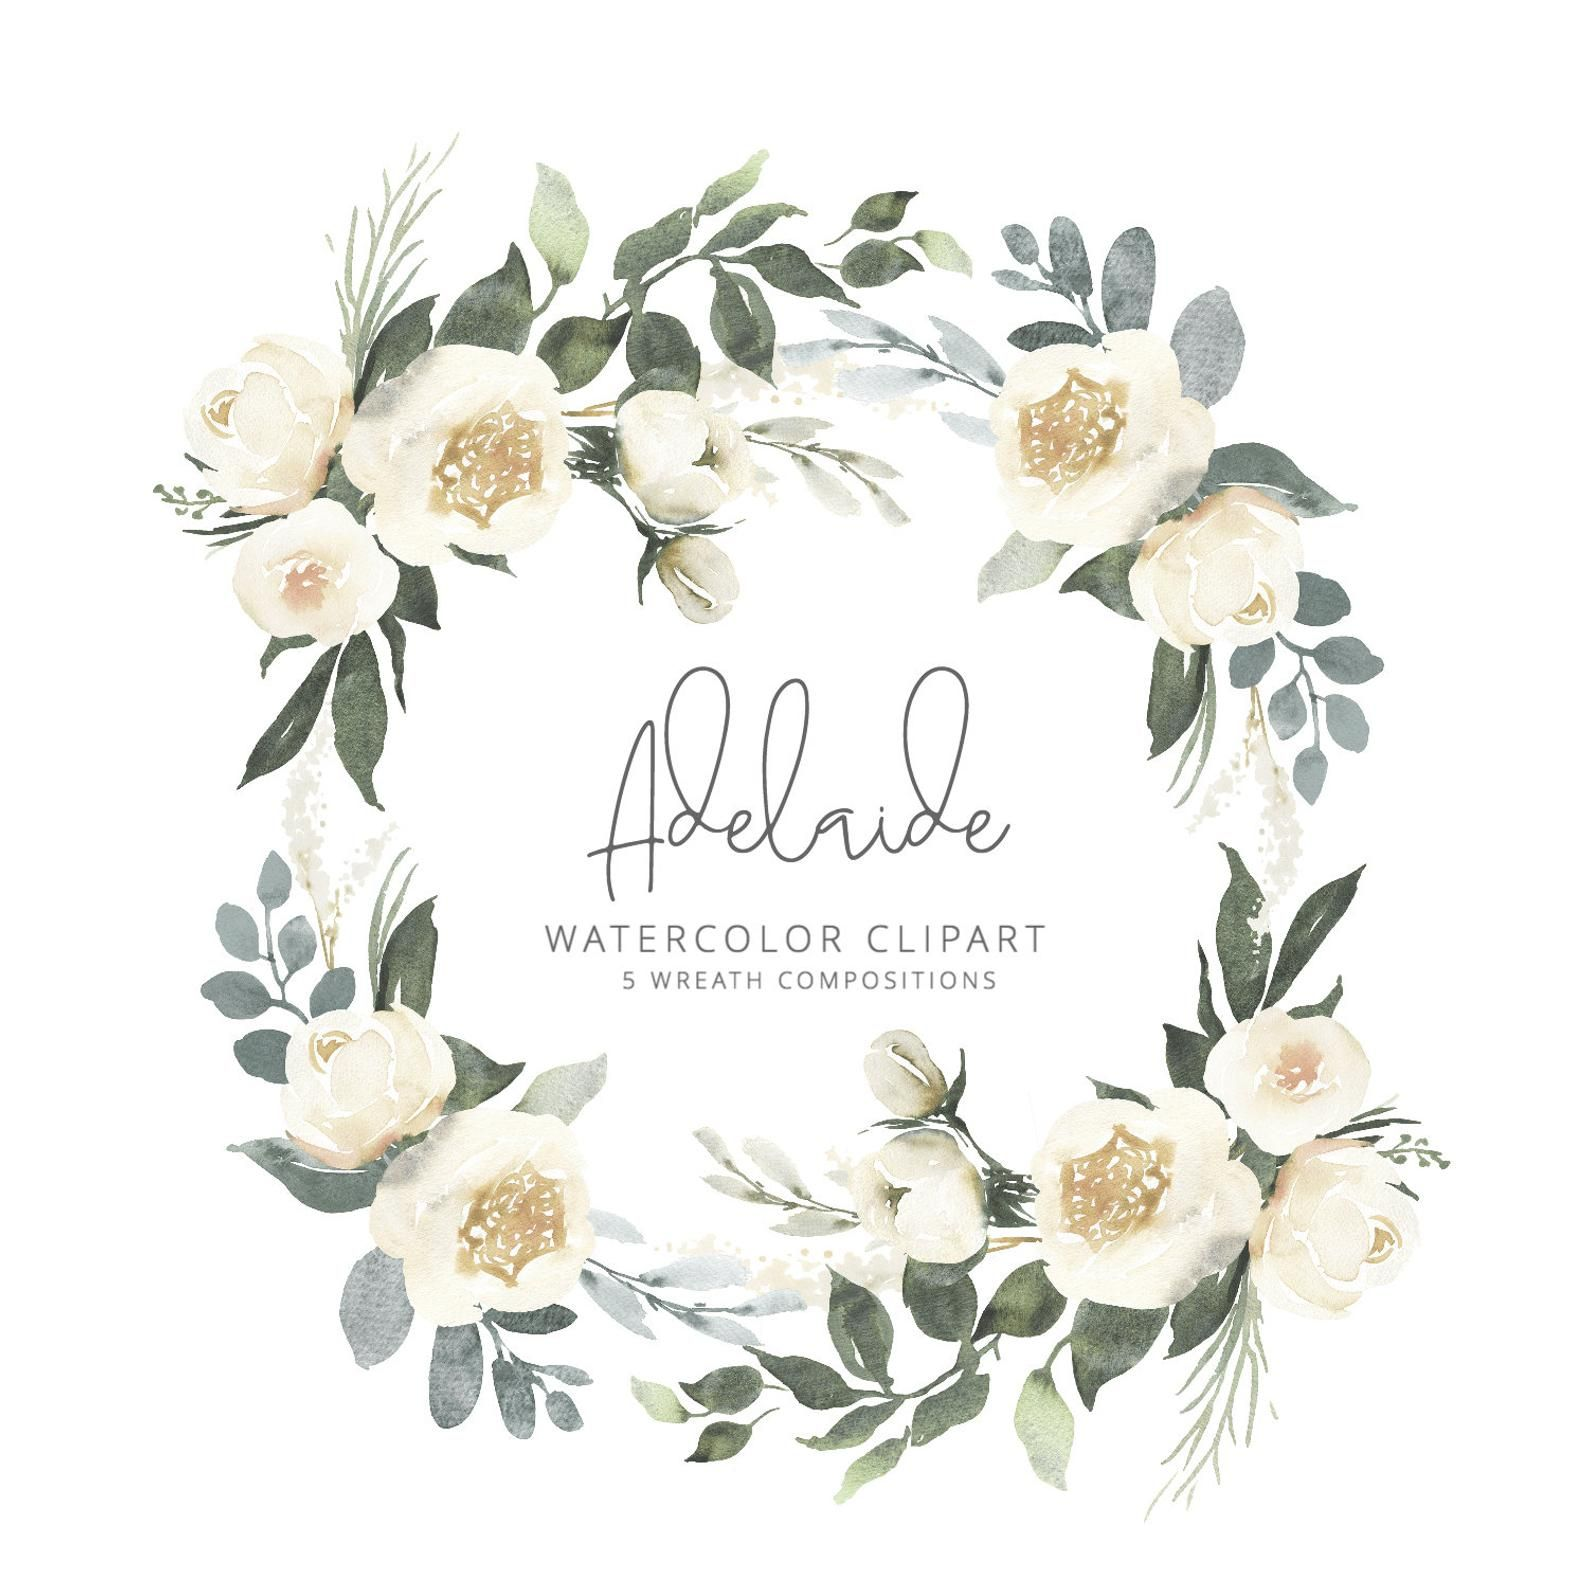 Adelaide Watercolor Clipart With White Roses And Eucalyptus Greenery Five Flower Wreath Compositions Wedding Clipart Adl Watercolor Clipart Watercolor Flower Illustration Clip Art